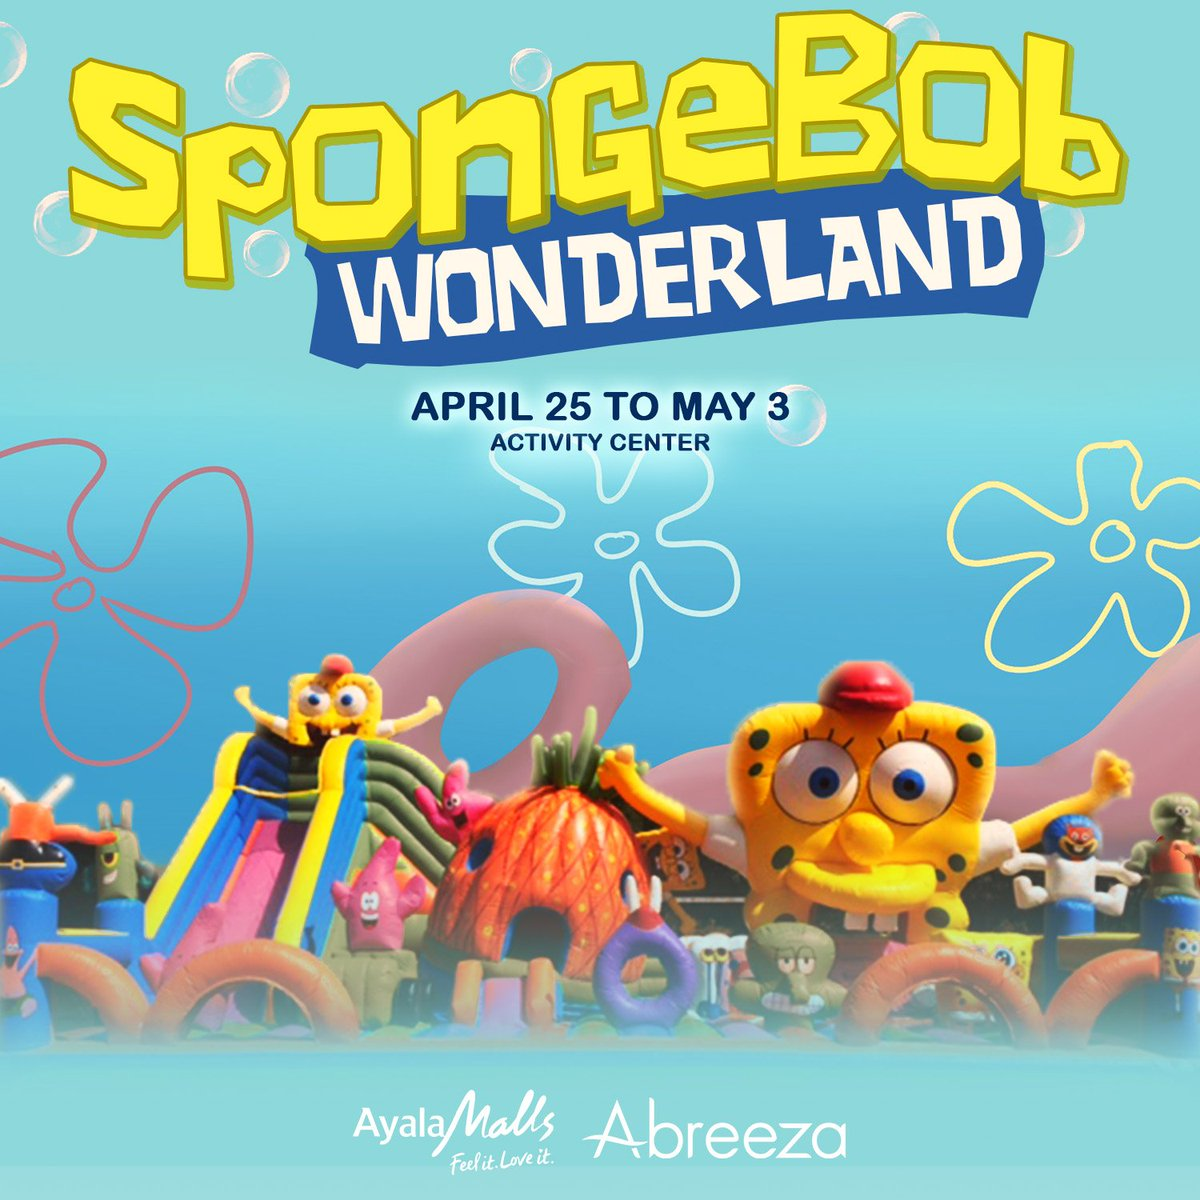 Abreeza With Spongebob Wonderland A Giant Inflatable Indoor Park For Both Kids AND Adults Entrance Fee Is P150 Head Hour So Come Over And Join The